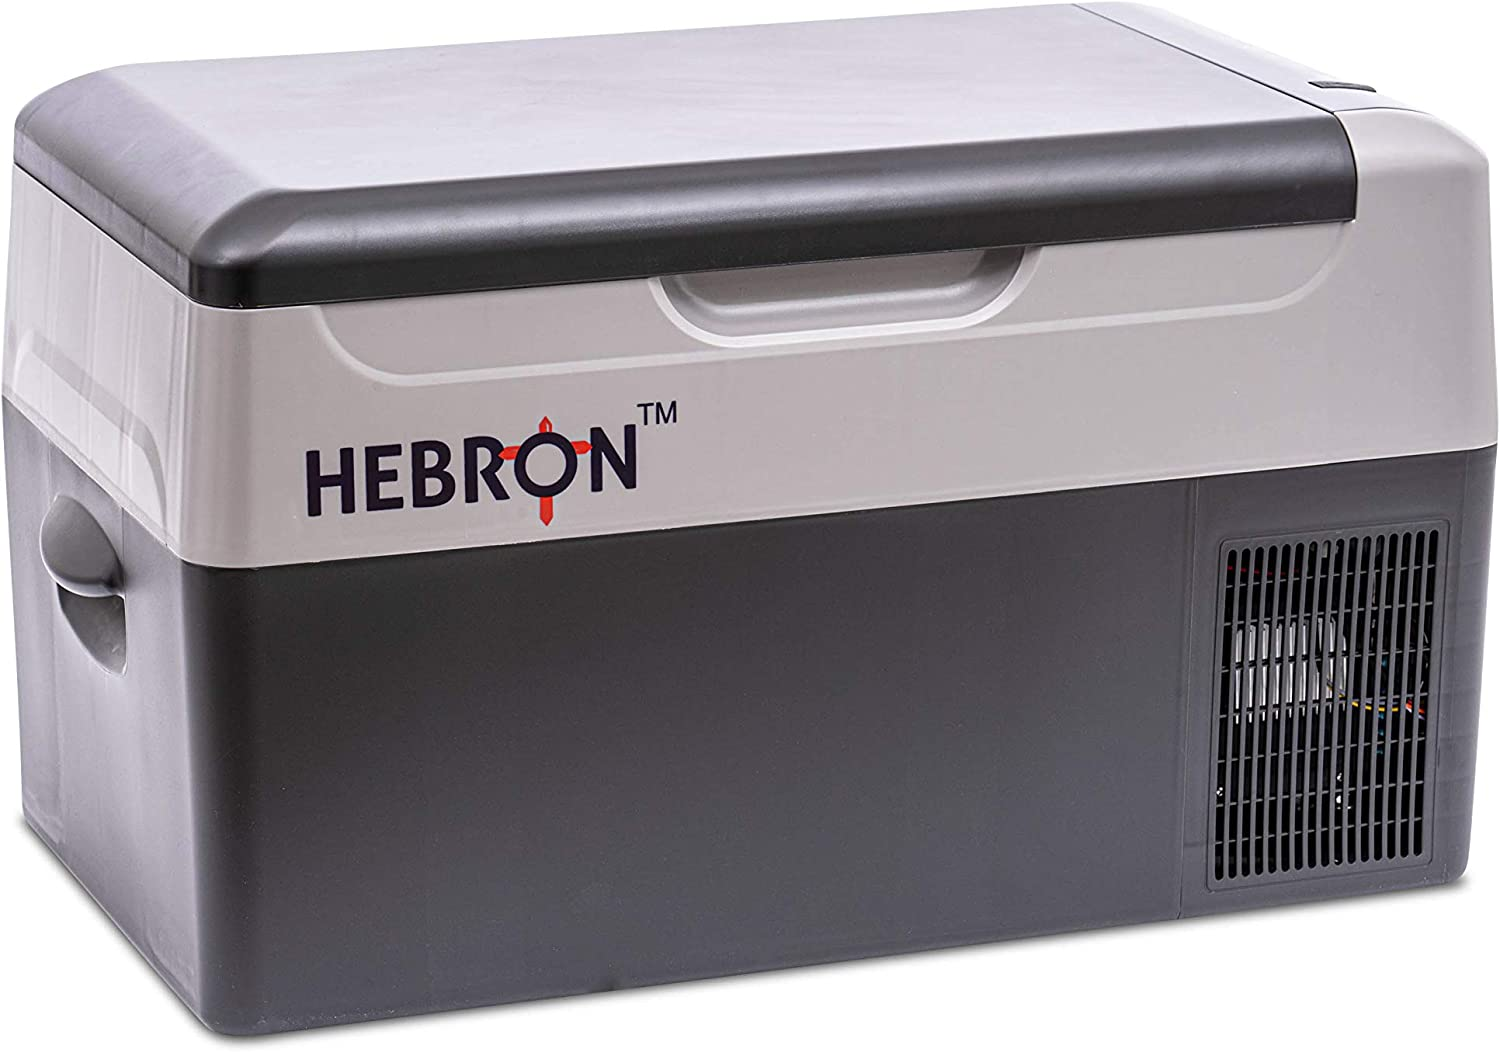 Hebron Automotive 23Q Portable Refrigerator – Efficient Car Fridge/Freezer for Camping, Fishing and Travel - 12/24V DC Mini Chest Cooler for Vans, Campers, RVs and Boats